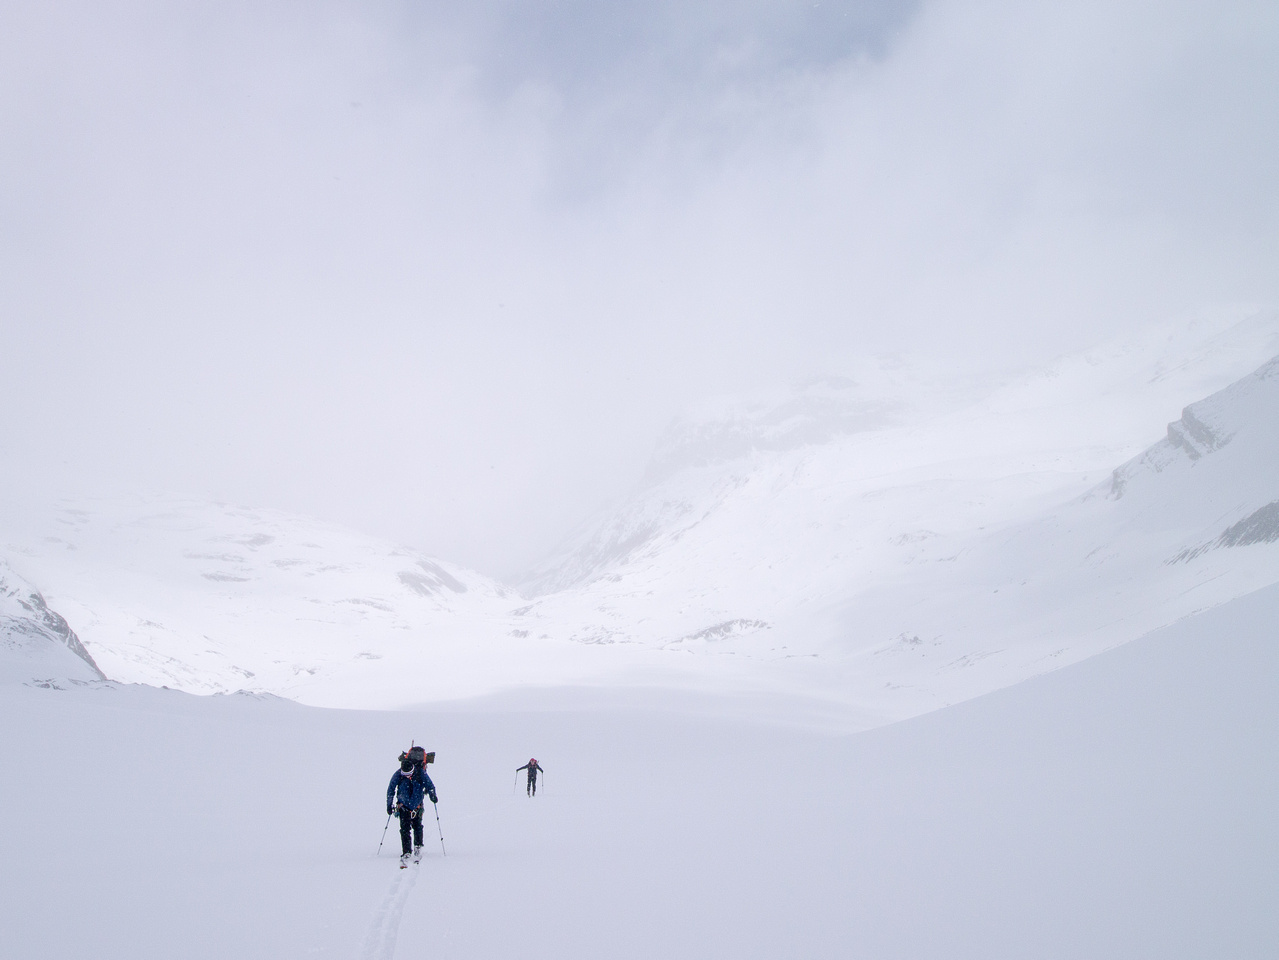 Ascending the Peyto Glacier to the Peyto Hut.